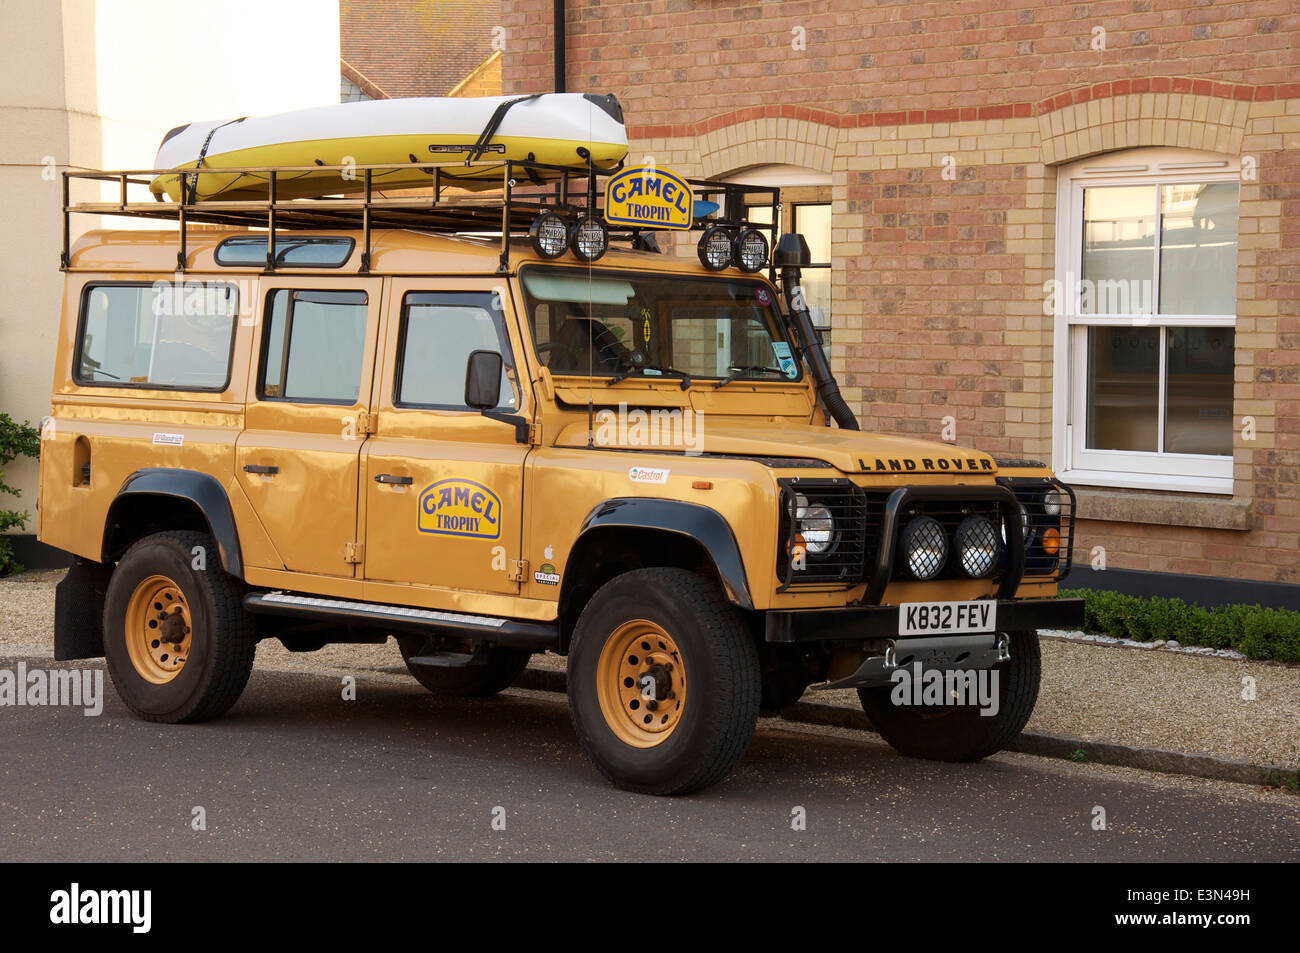 a camel trophy land rover defender a rugged off road vehicle